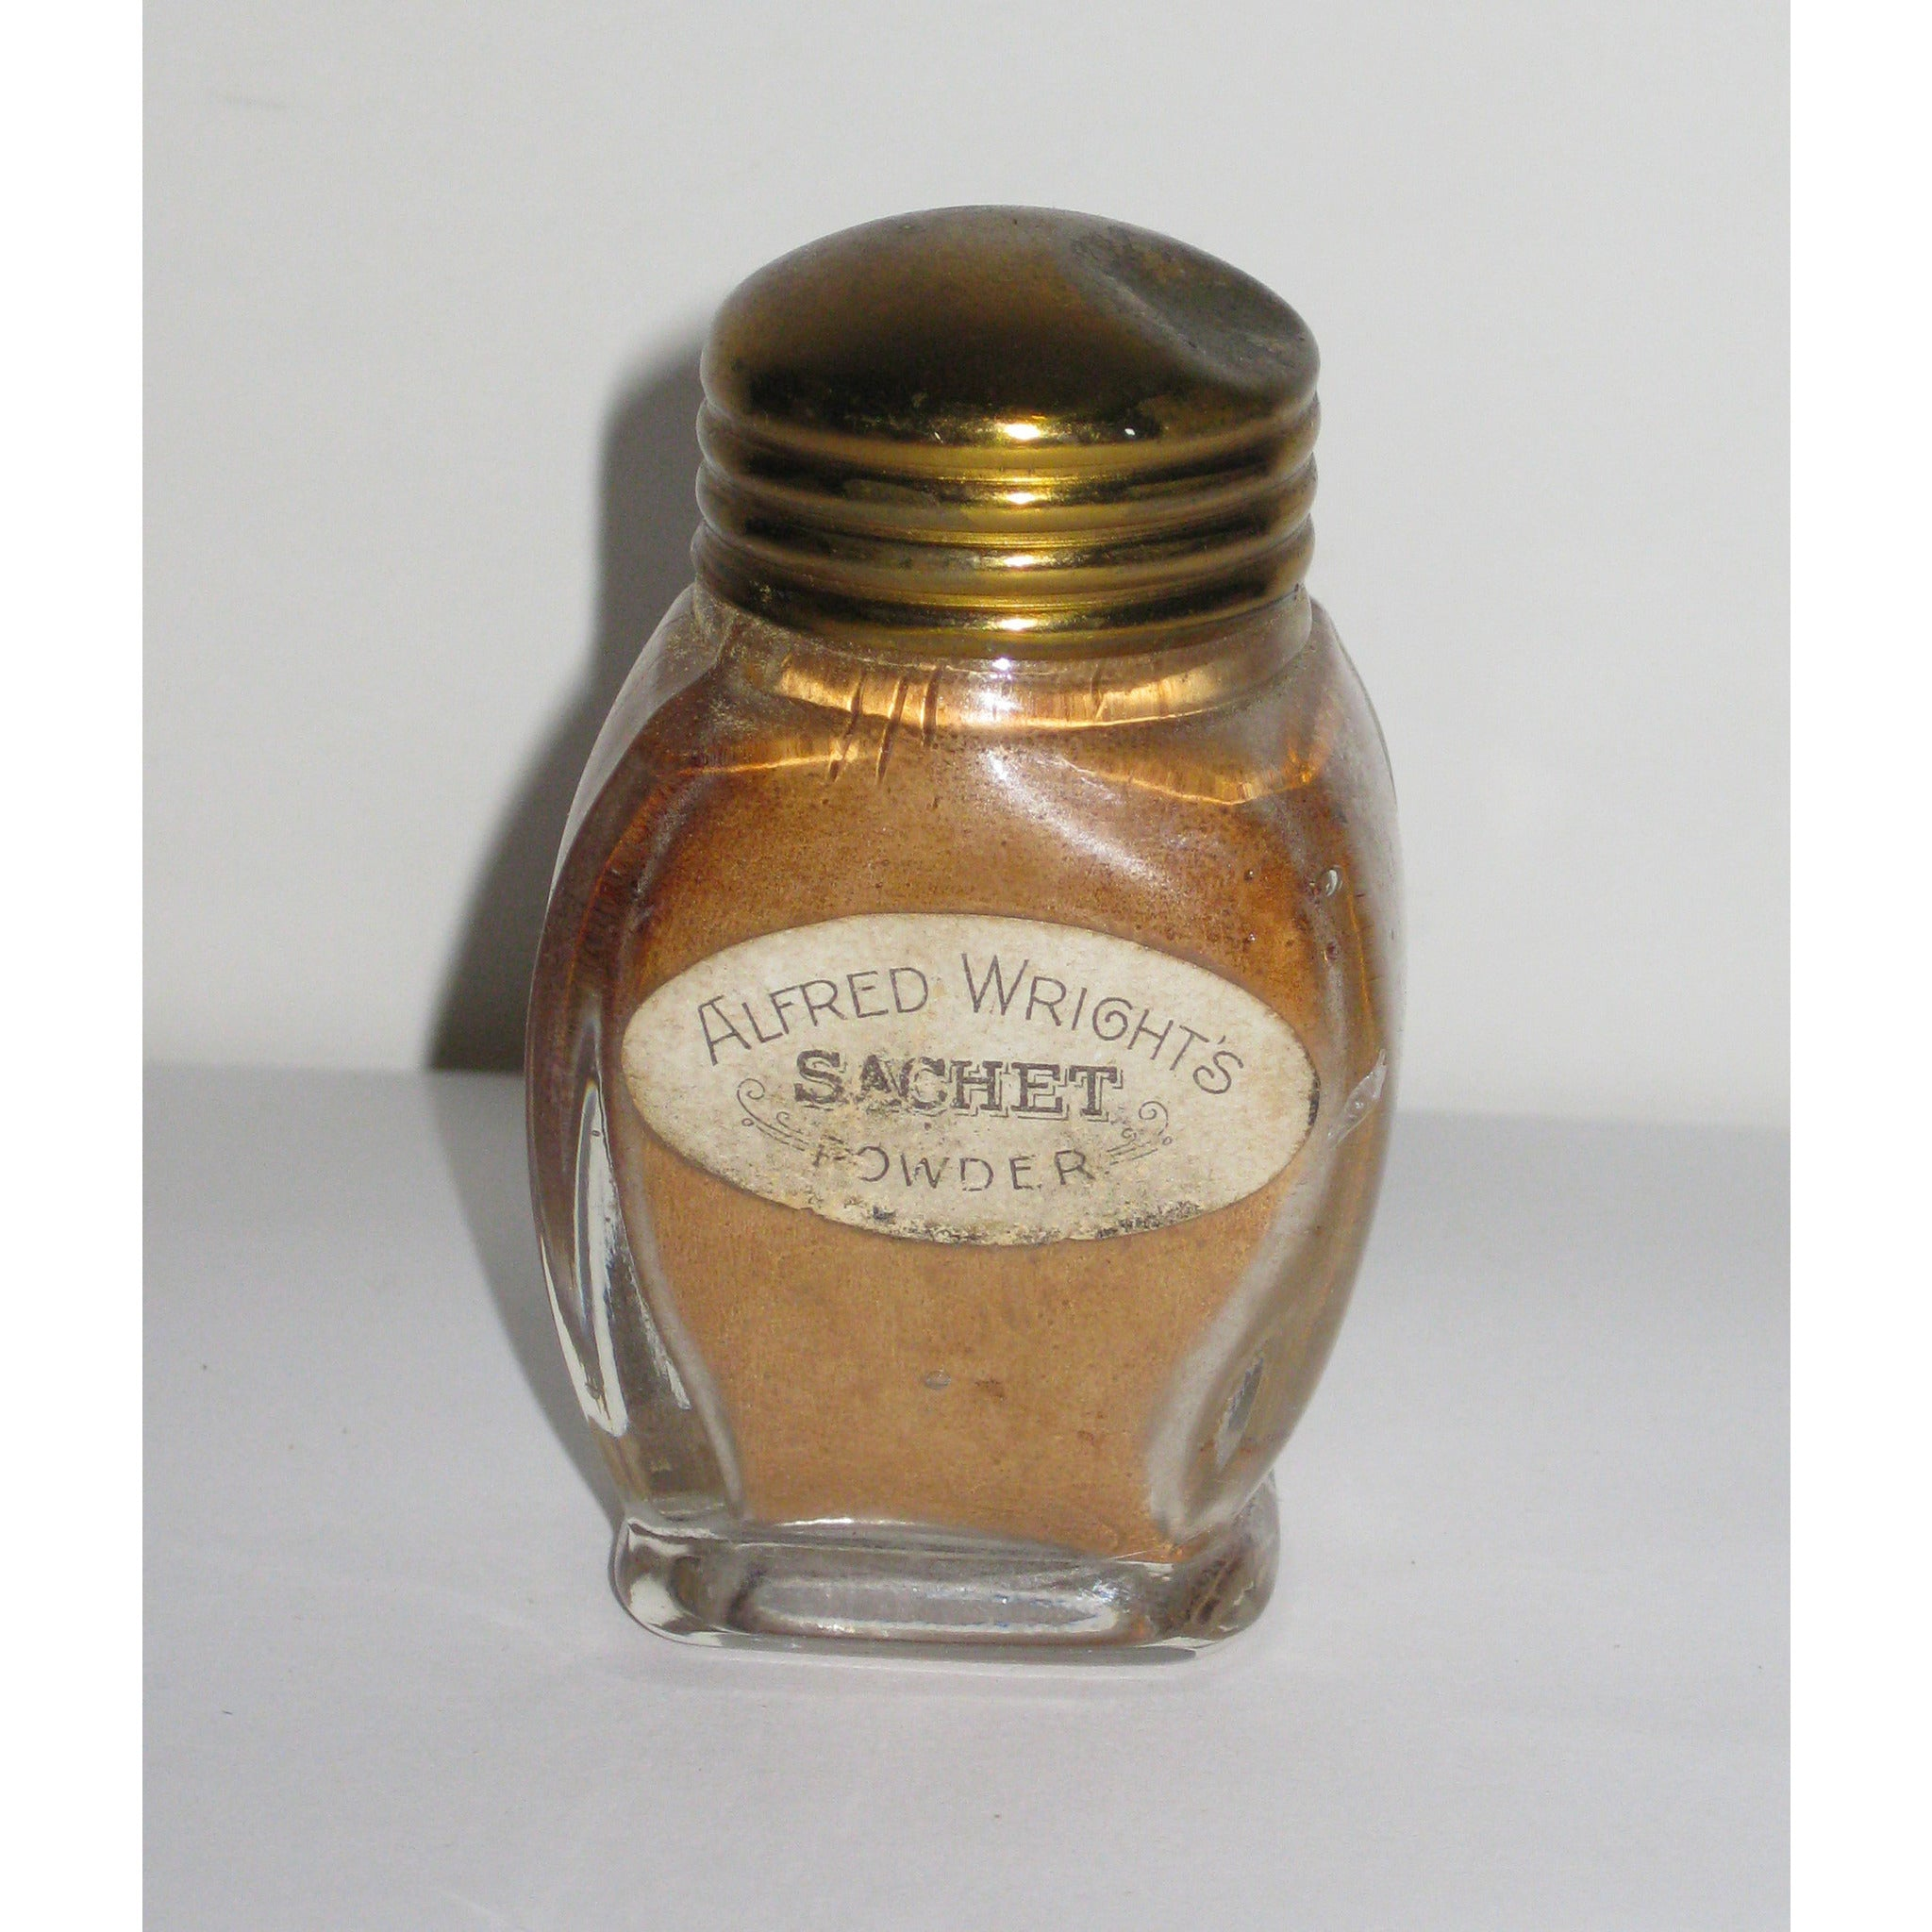 Vintage Alfred Wright's Sachet Powder